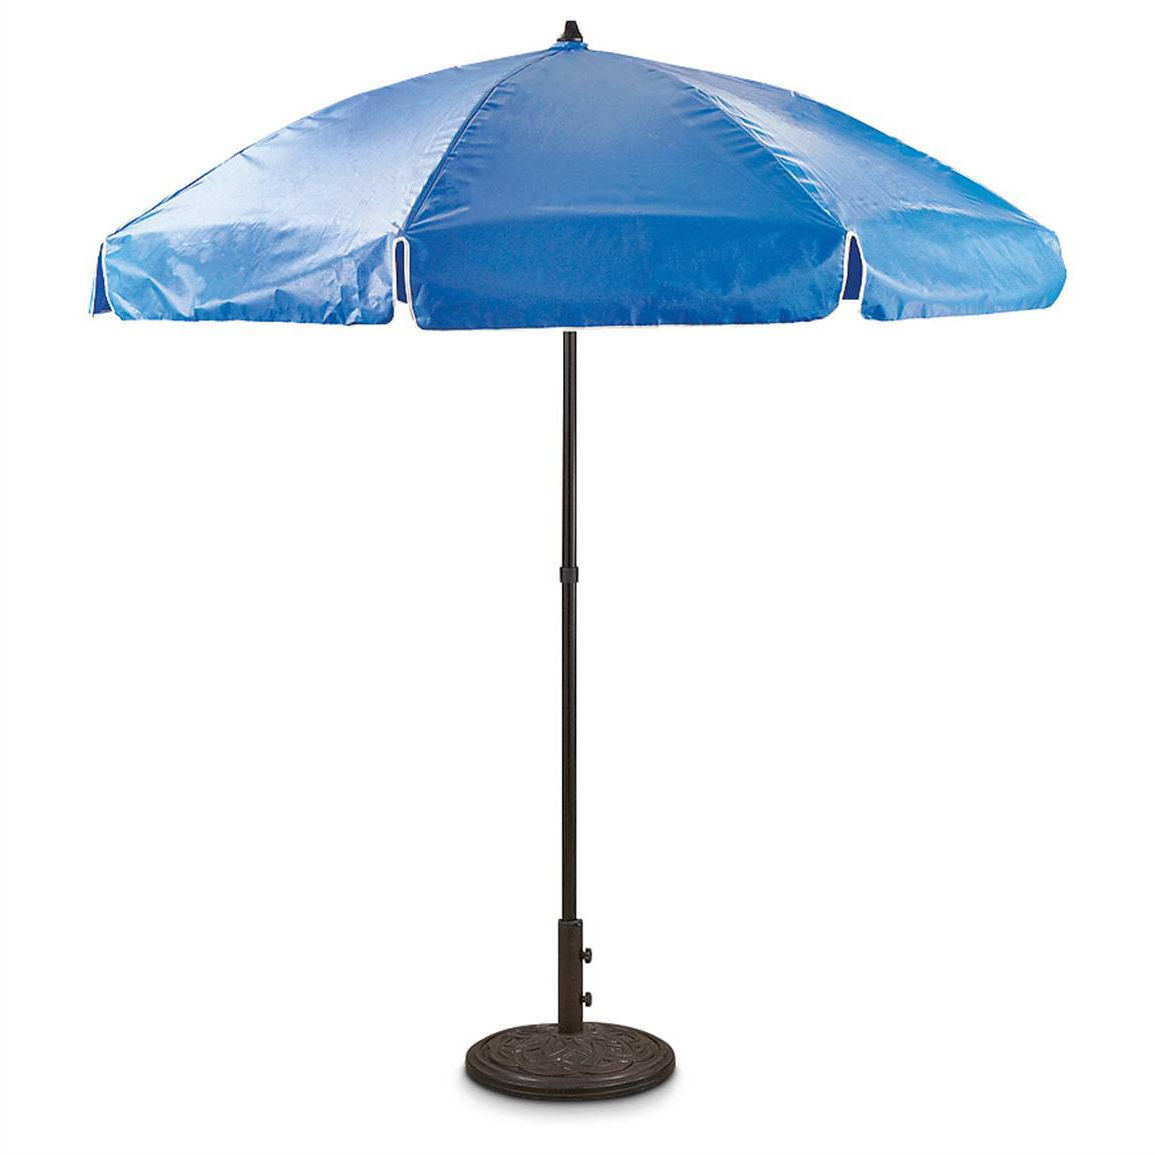 "7'6"" Drape Vinyl Patio Umbrella – 635354, Patio Umbrellas At Throughout 2020 Drape Umbrellas (View 2 of 20)"